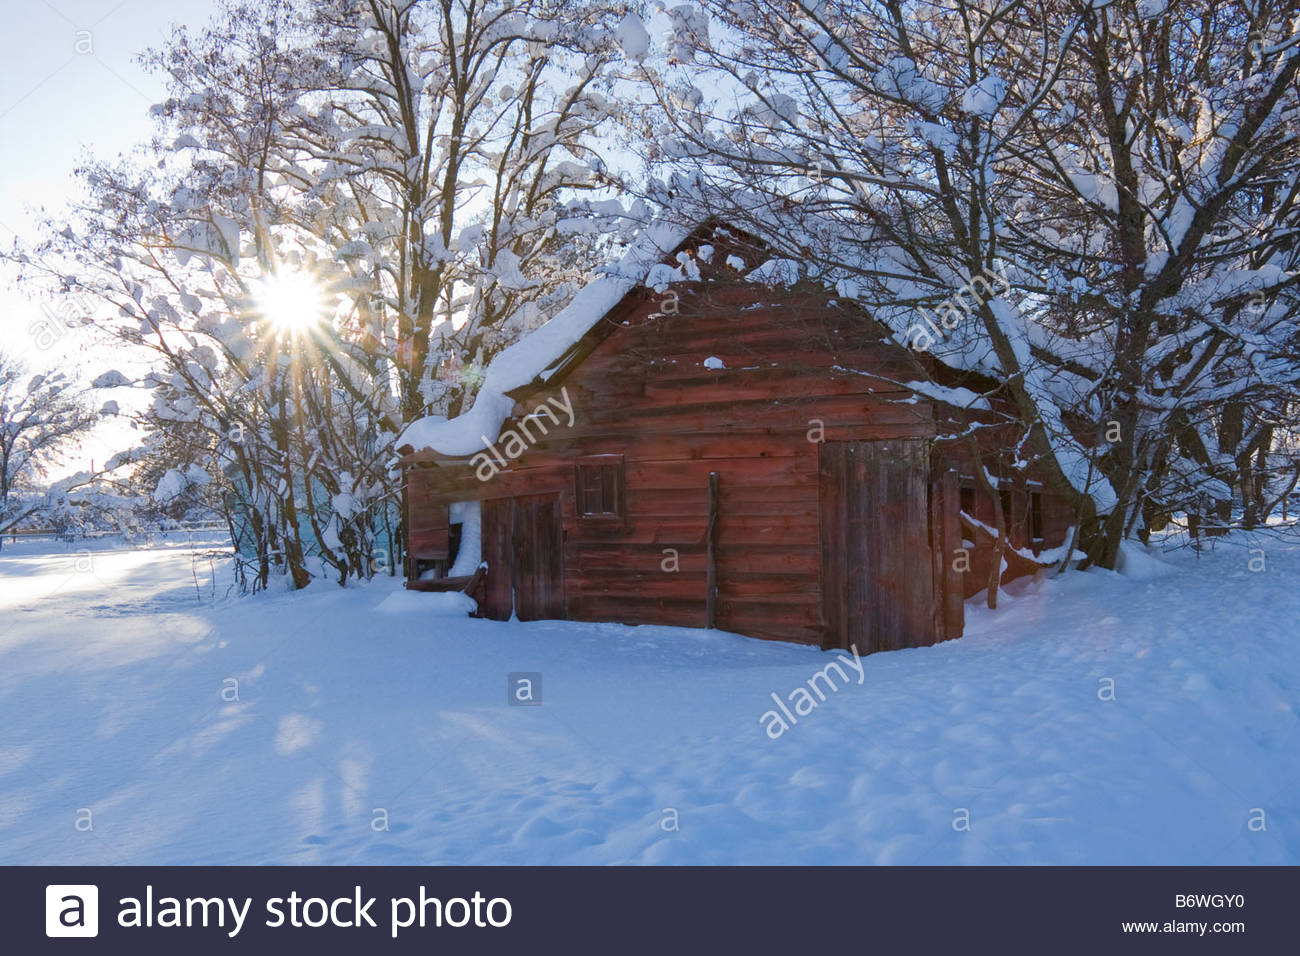 A vintage outbuilding with faded paint in a snow covered landscape with afternoon sun rays filtering through trees. - Stock Image